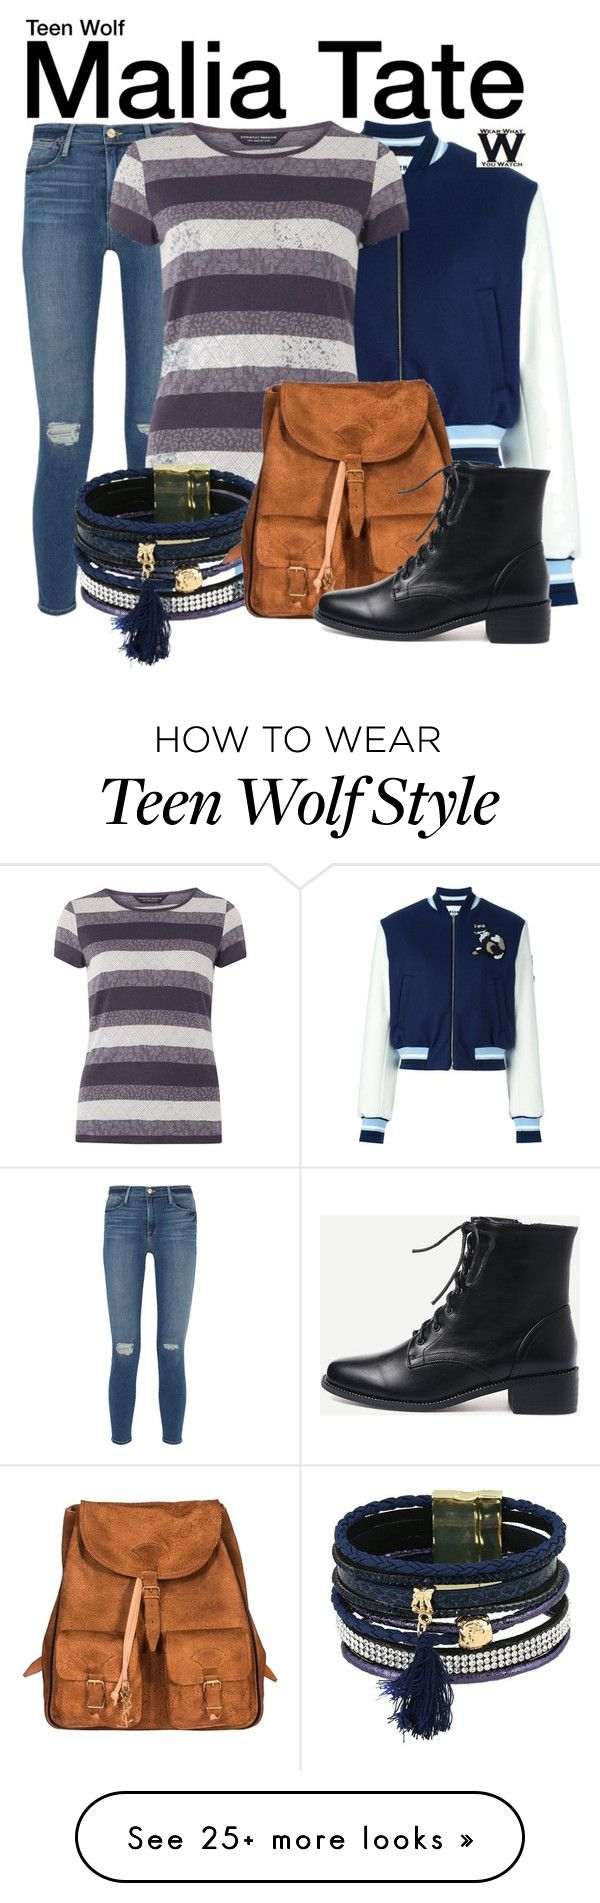 """Teen Wolf"" by wearwhatyouwatch on Polyvore featuring MSGM, Frame, Dorothy Perkins, Yves Saint Laurent, WithChic, television and wearwhatyouwatch"